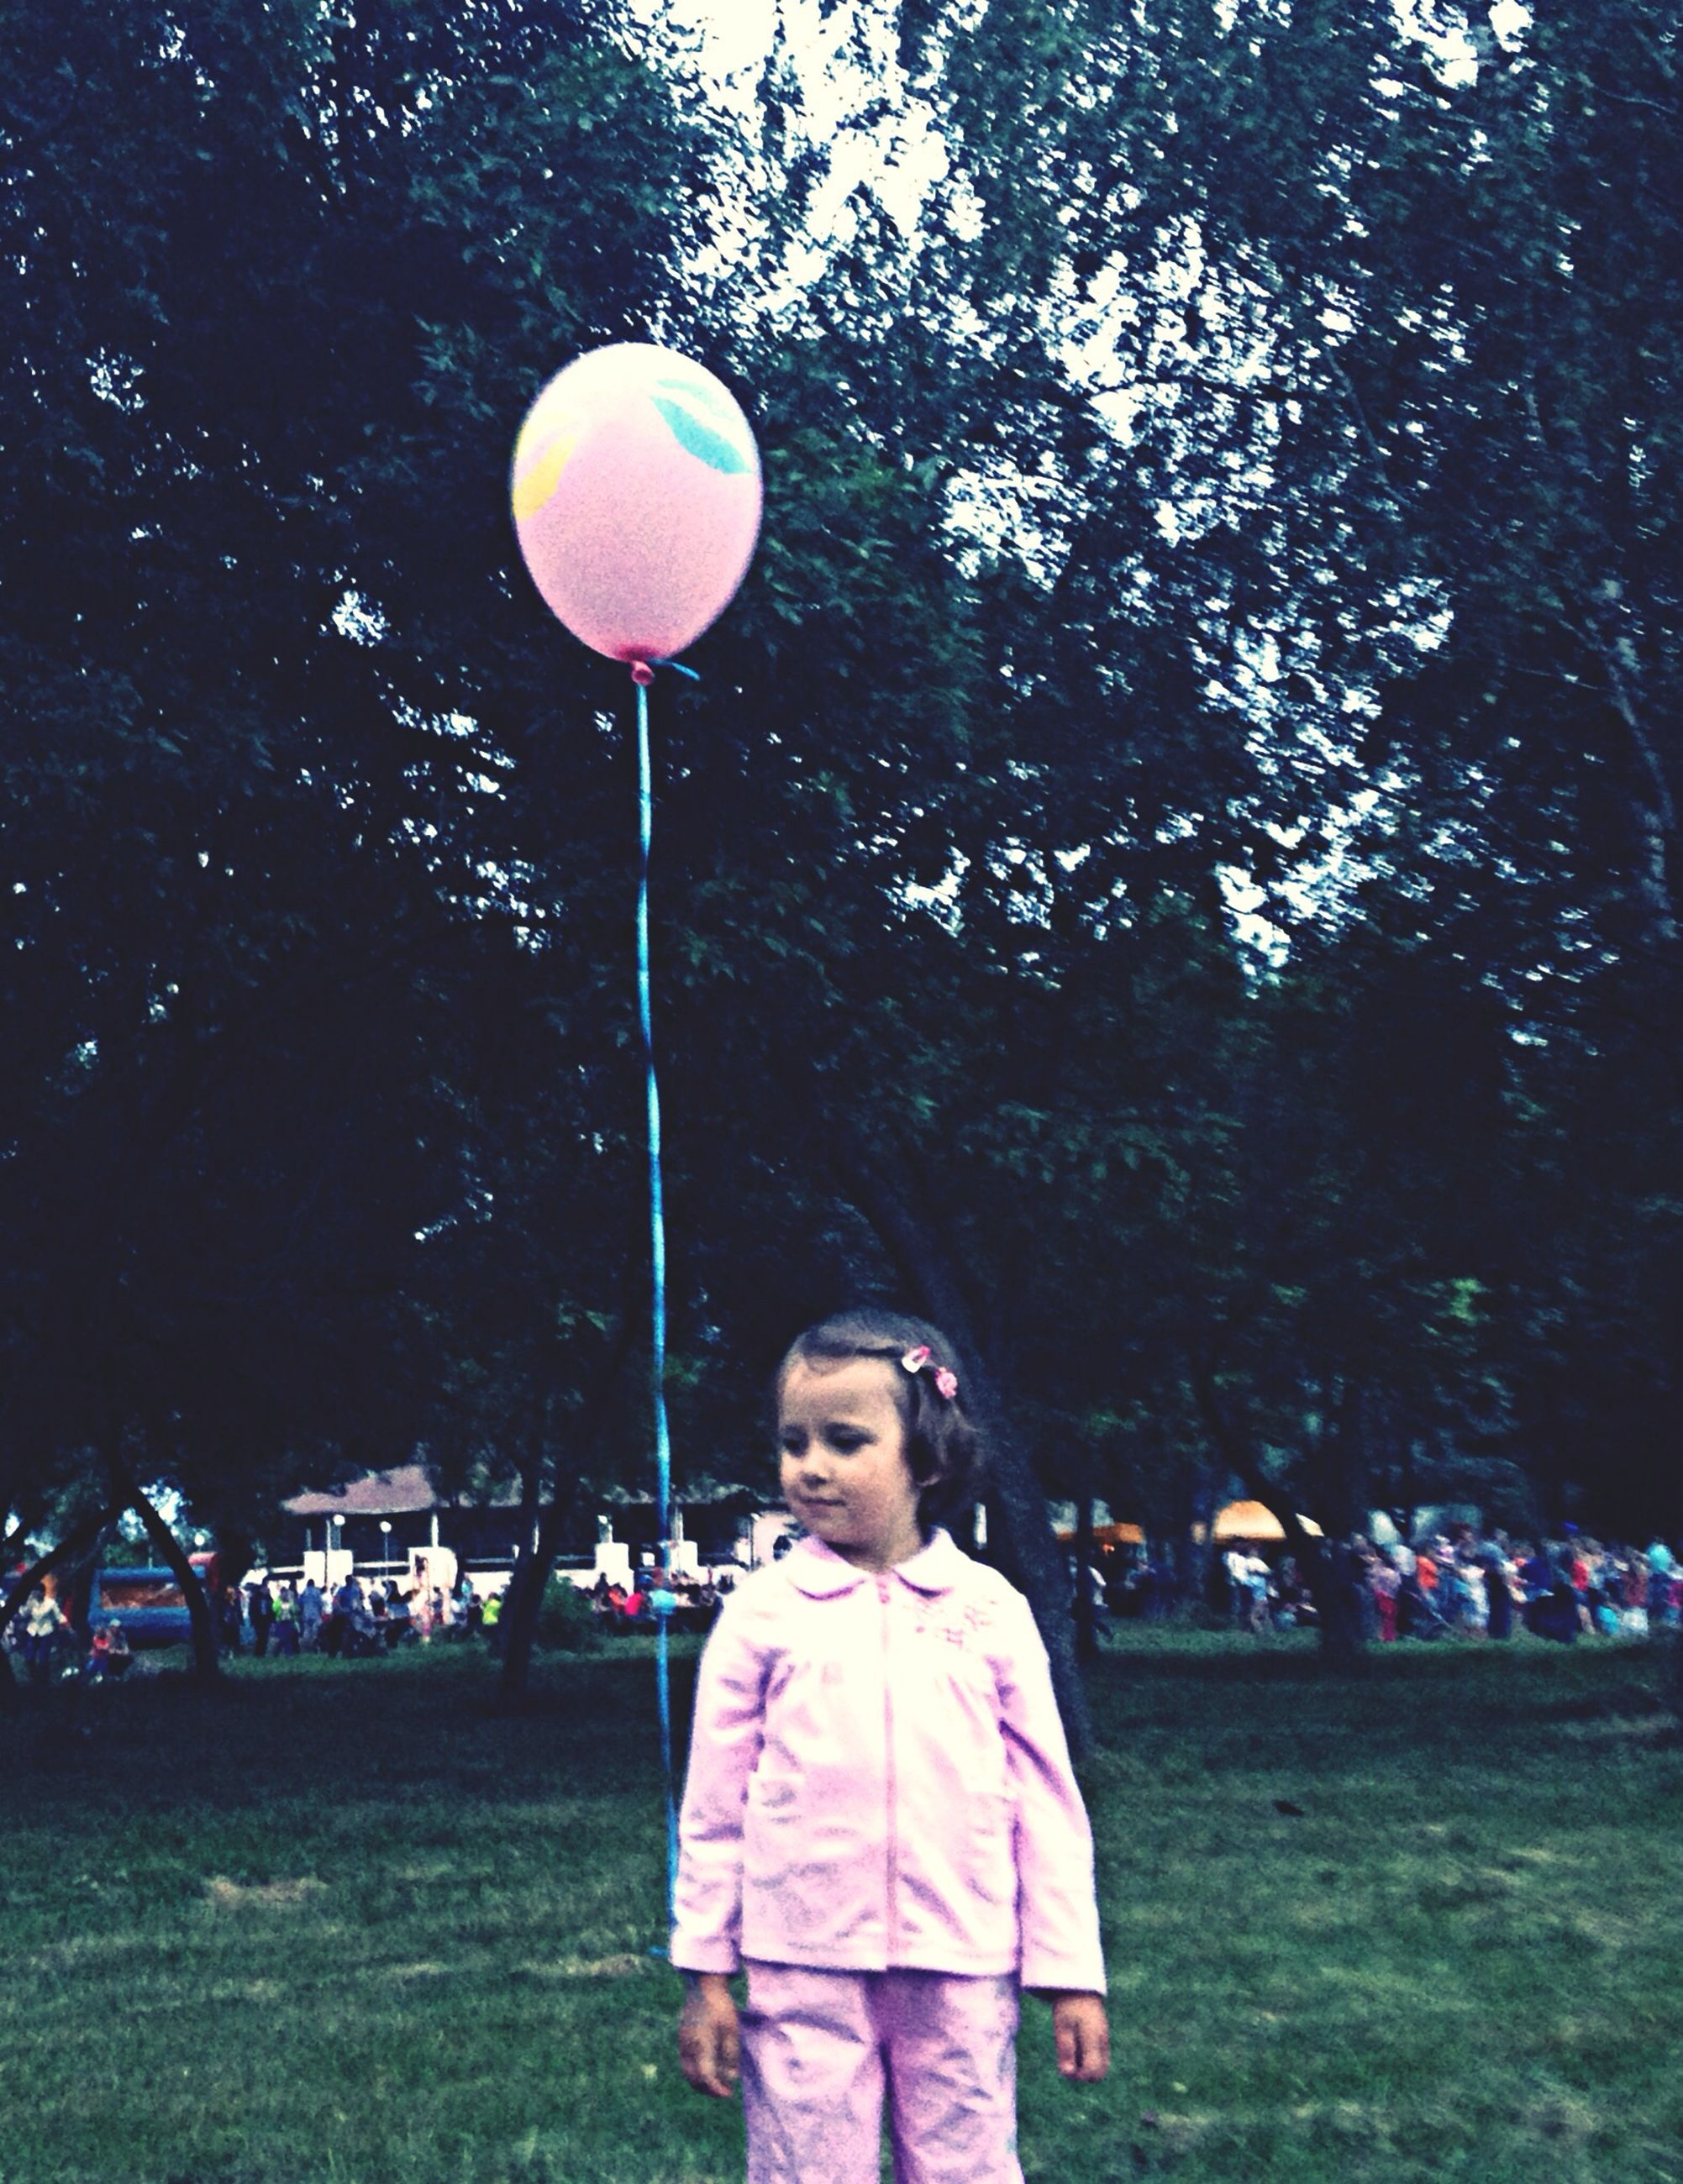 lifestyles, leisure activity, childhood, casual clothing, tree, girls, standing, elementary age, holding, balloon, boys, rear view, enjoyment, person, outdoors, day, full length, sunlight